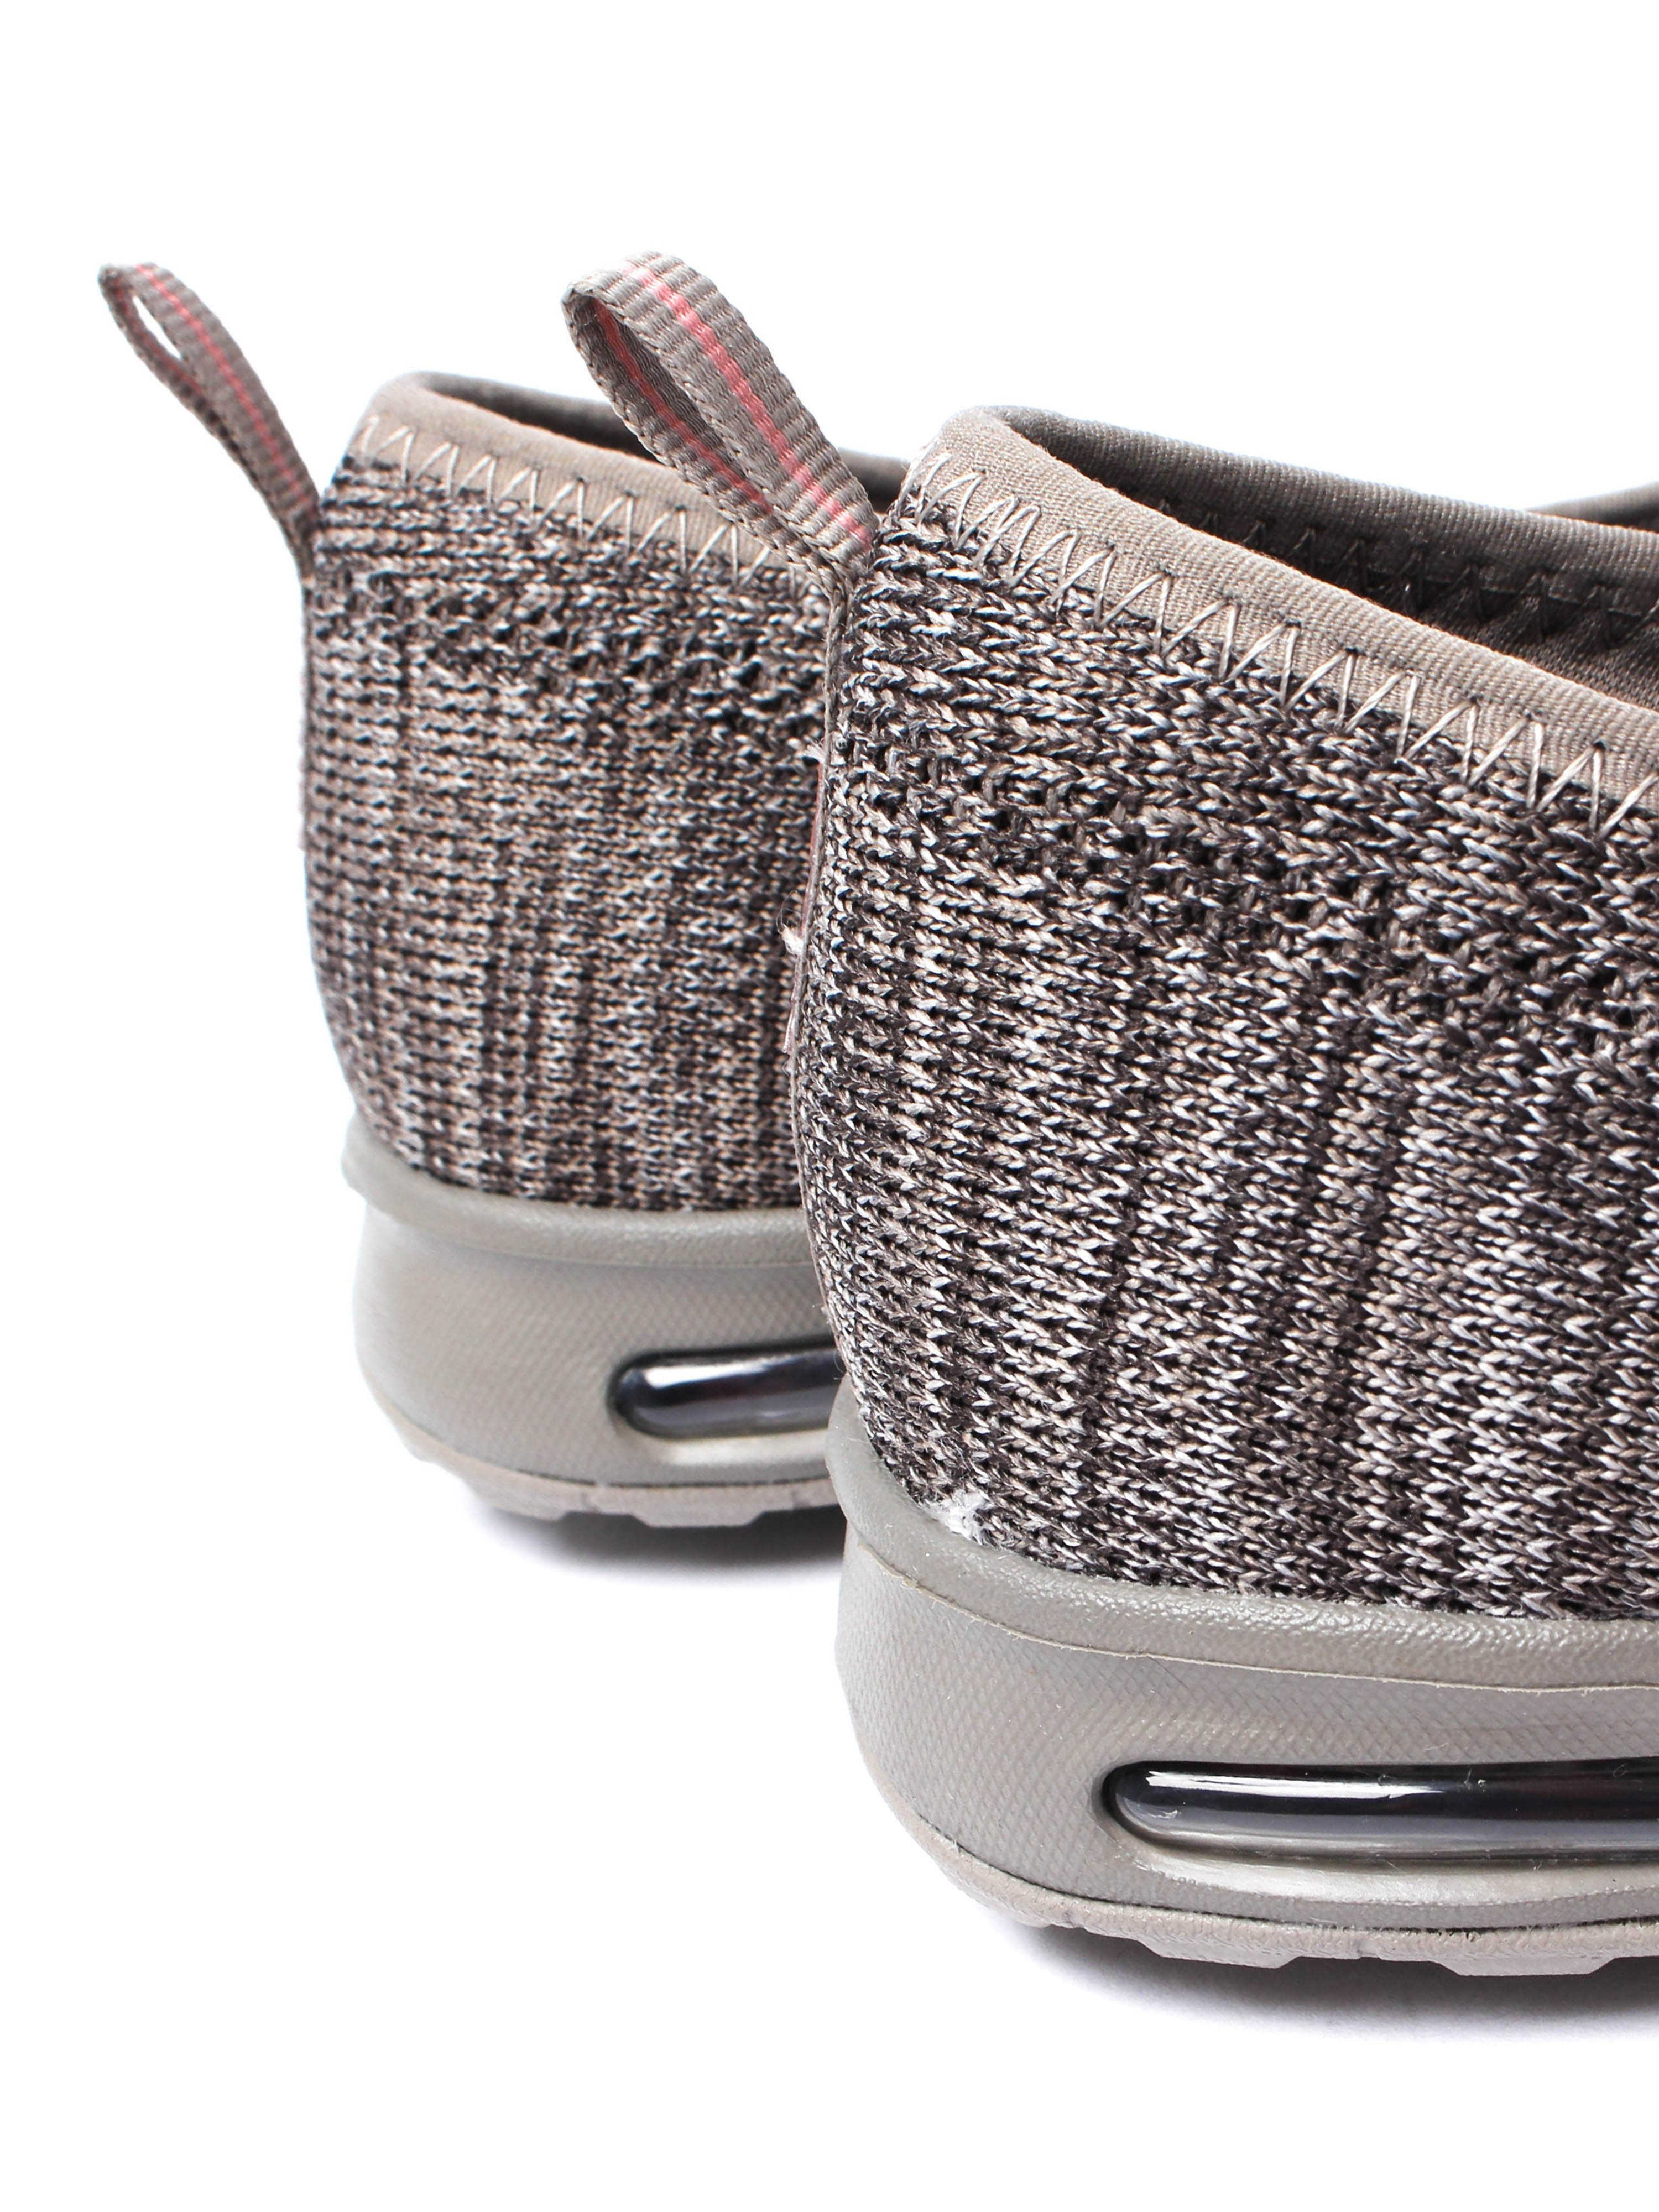 Skechers Women's Easy Air In My Dreams Trainers - Taupe